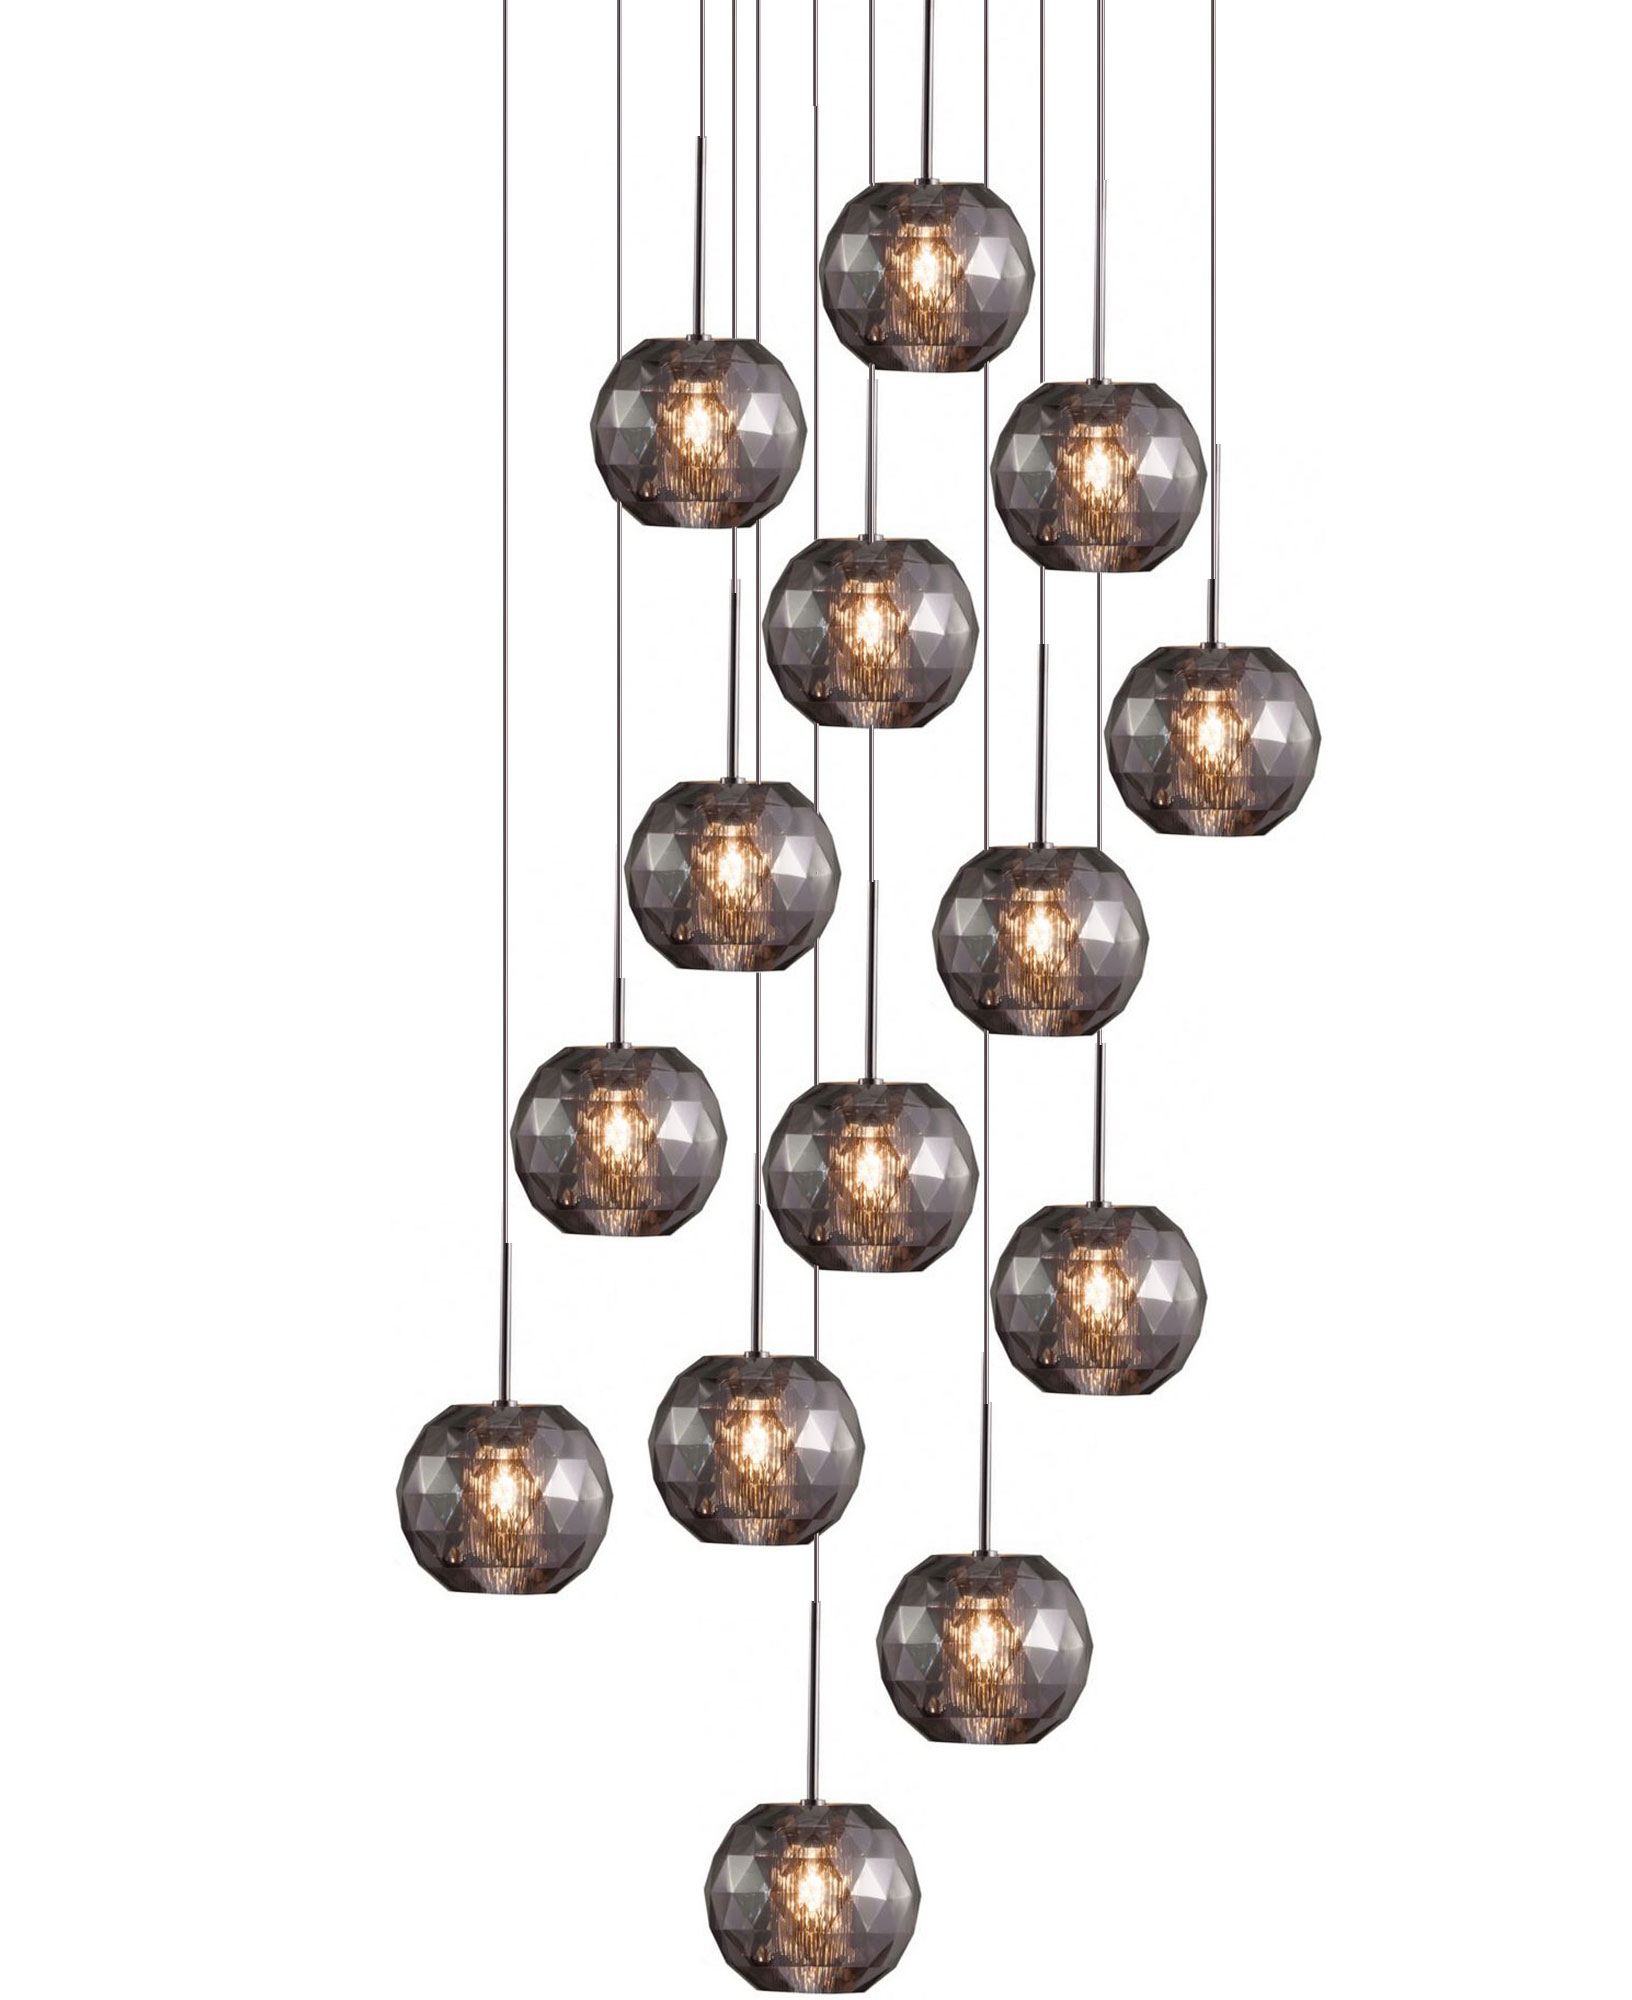 viso lighting. gemma 14 light pendant by viso 14mm0792121 lighting